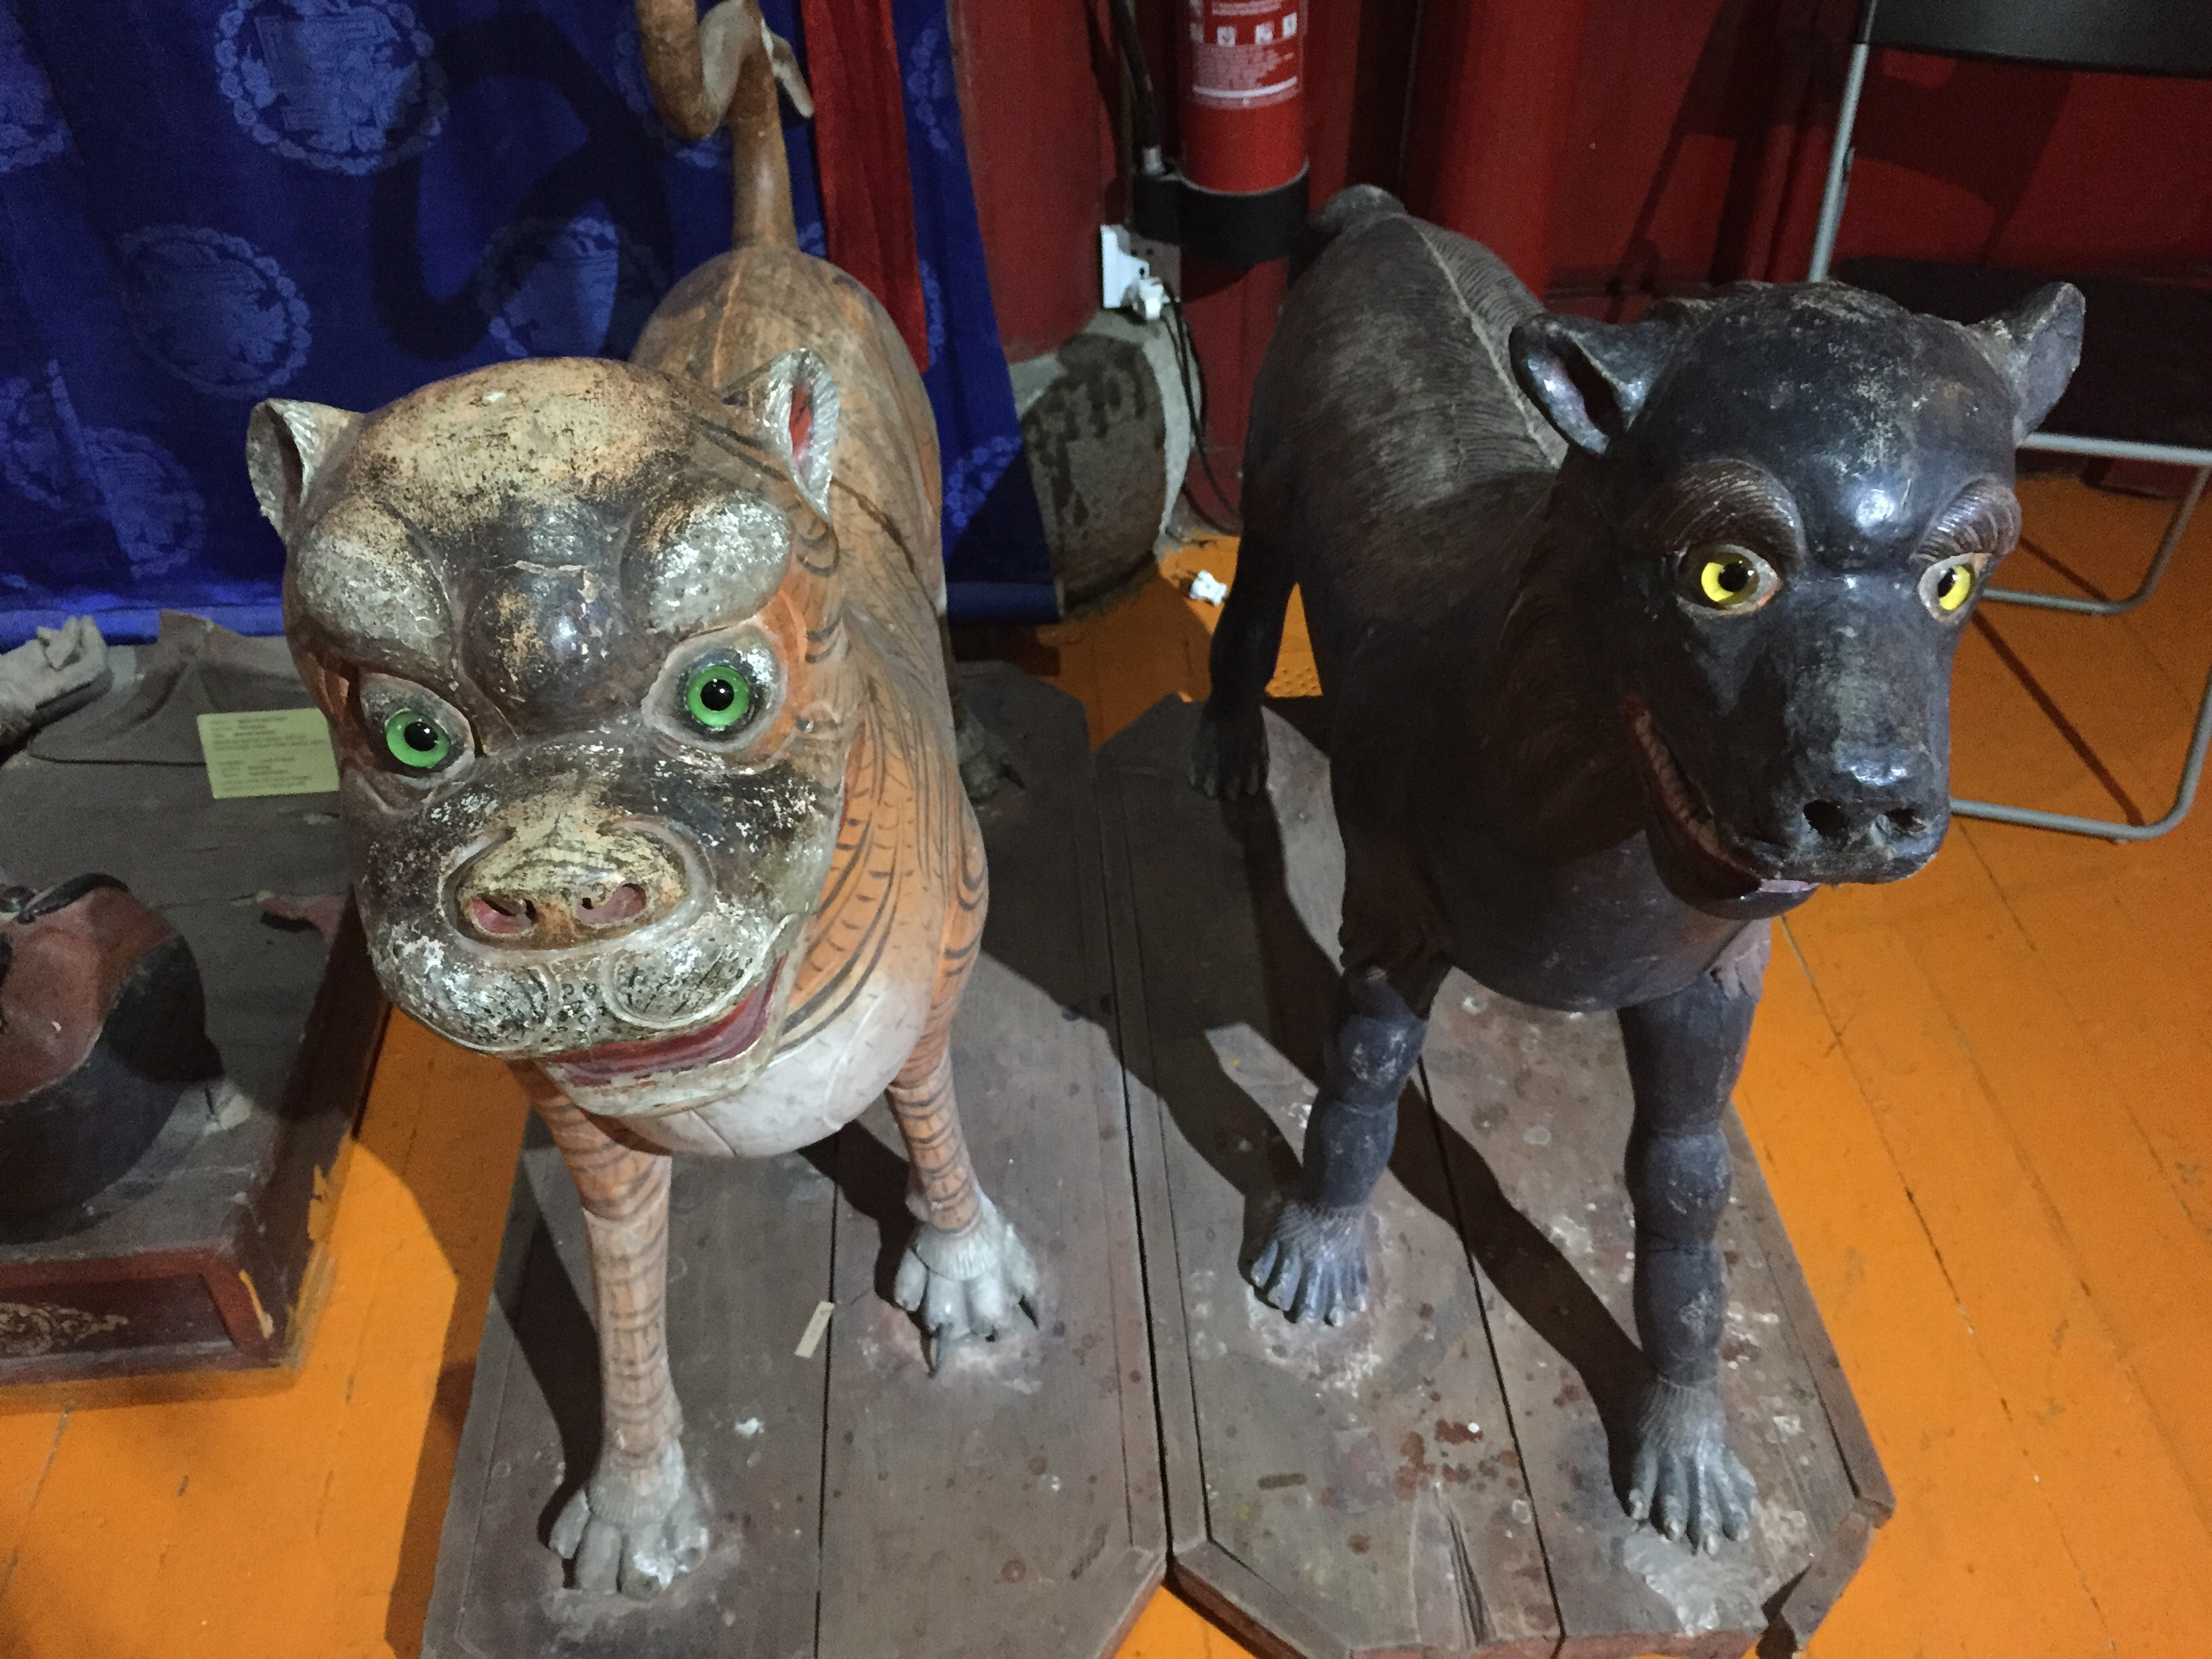 These guard animals where on either side of a door, with no sign. They seemed a bit haphazardly placed to me. I'm not sure what they were originally for.